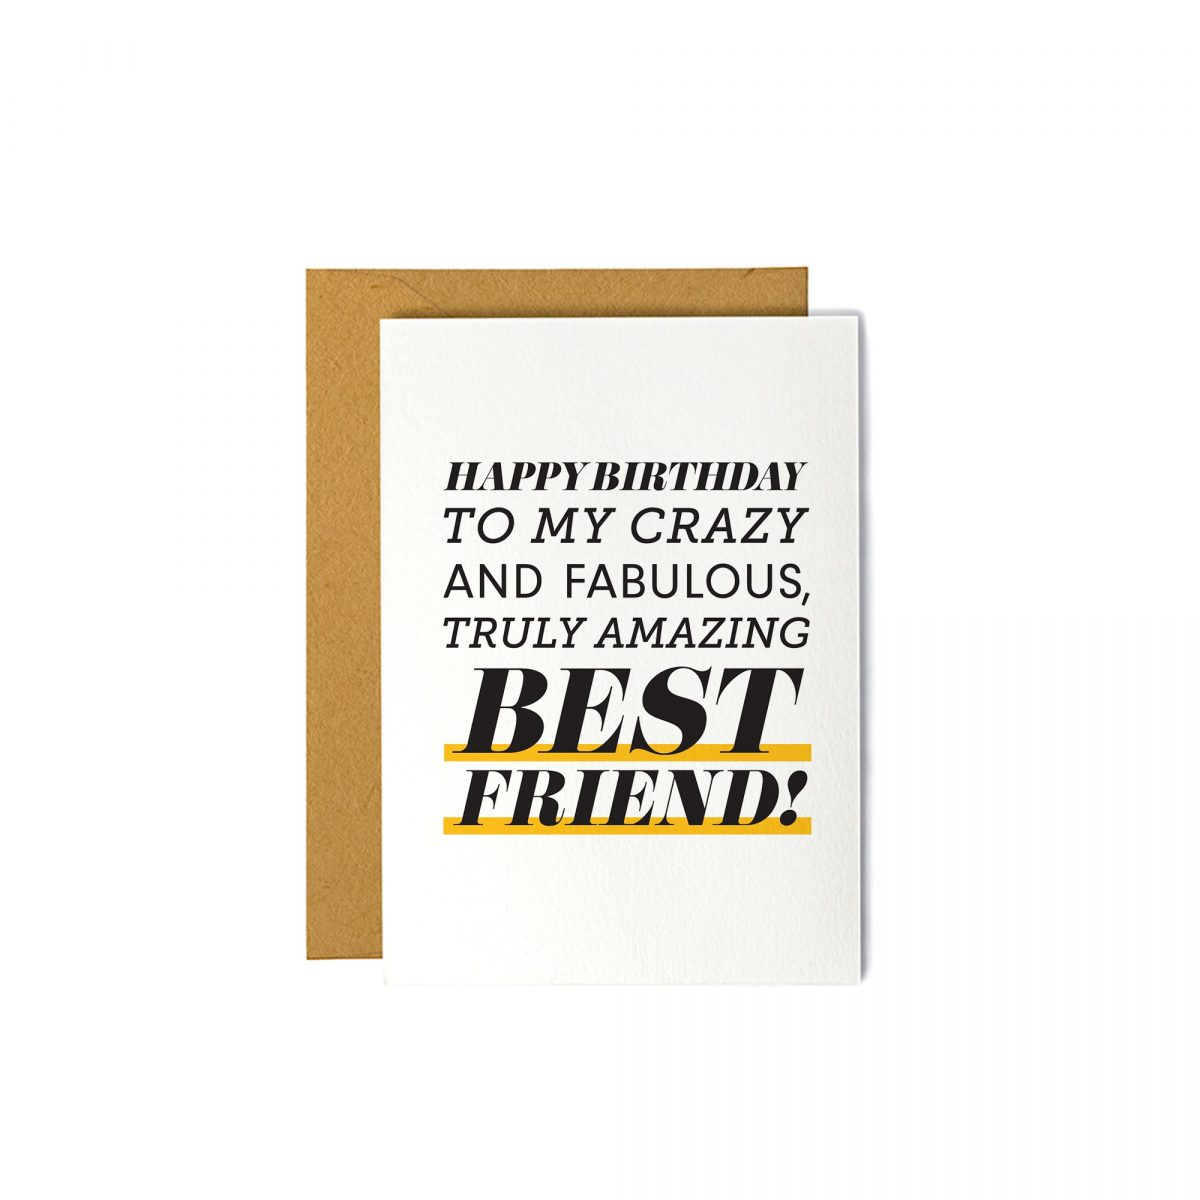 Happy Birthday to My Crazy and Fabulous Best Friend - Greeting Card